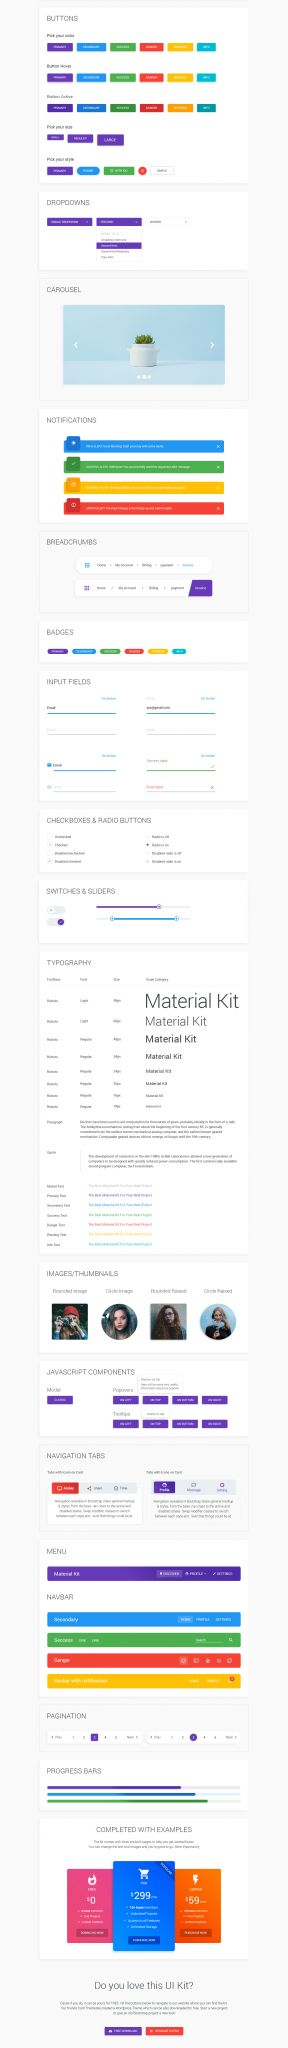 Material Kit - Free Material Design UI Kit PSD - ThemeSelection